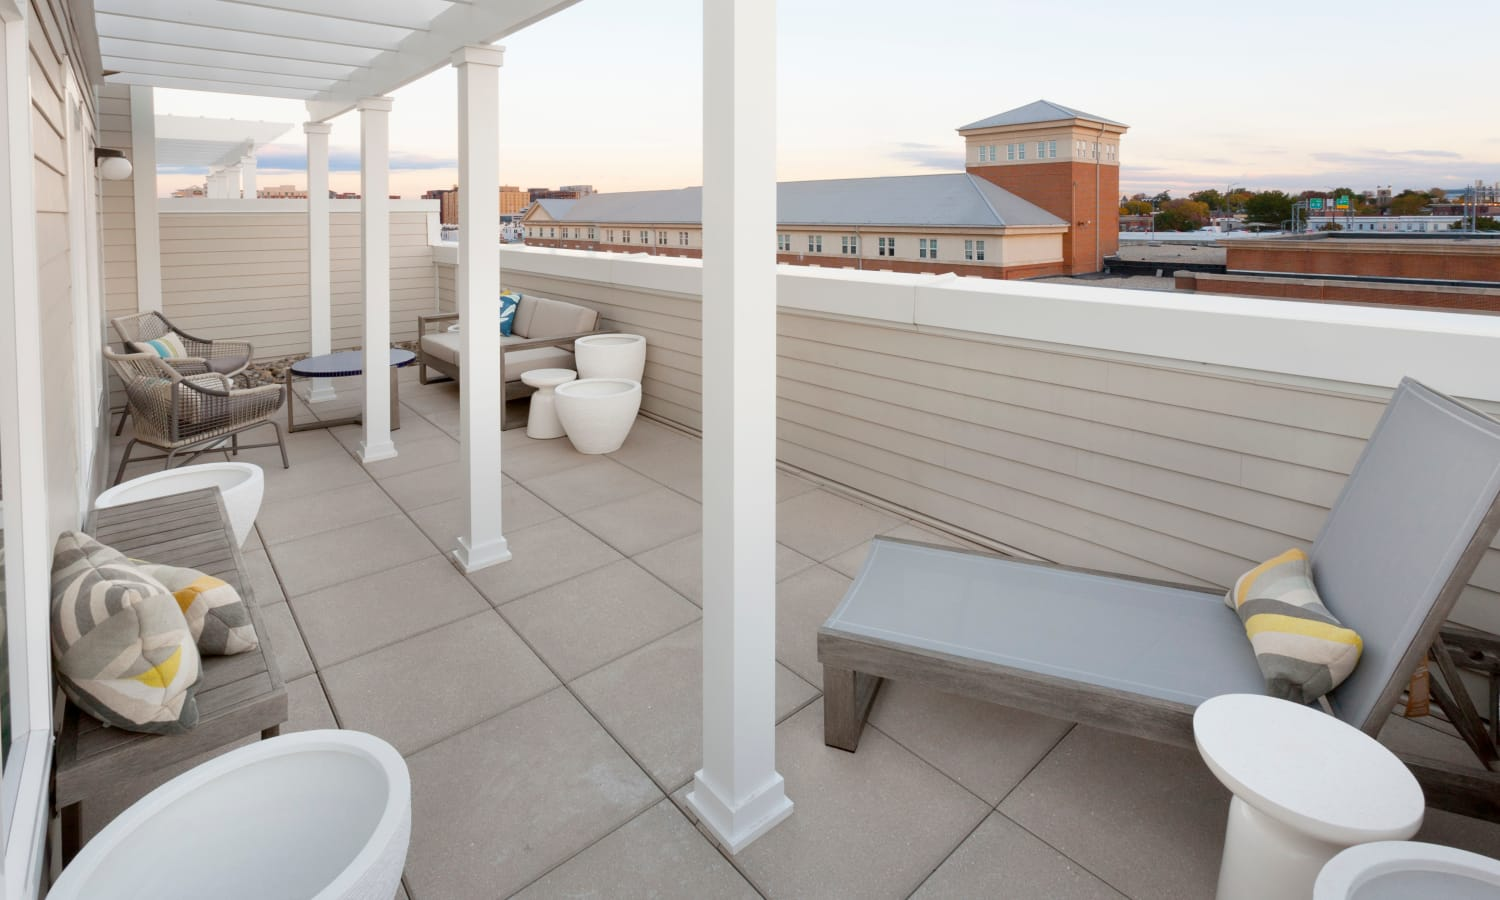 Expansive private deck with a gorgeous view of the city at The Bixby in Washington, District of Columbia